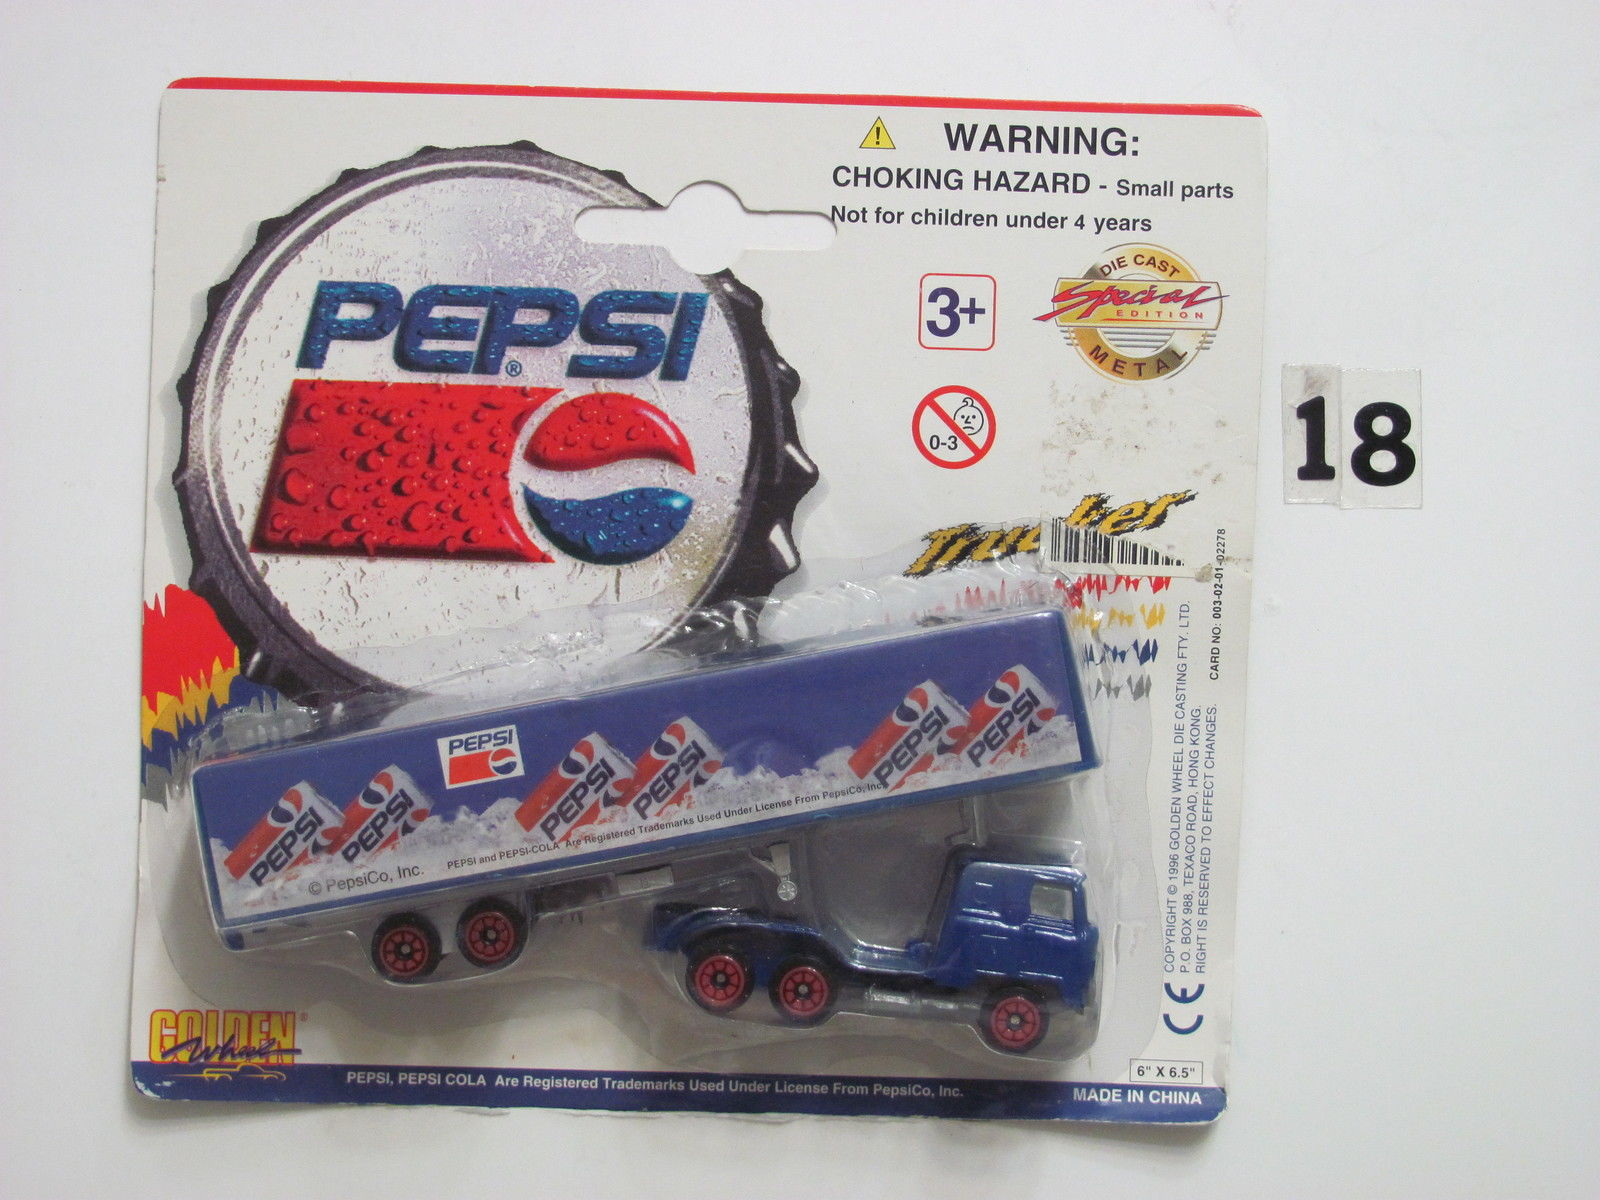 PEPSI DIE CAST METAL SPECIAL EDITION GOLDEN WHEELS TRAILER W/ DETACHABLE TRACTOR